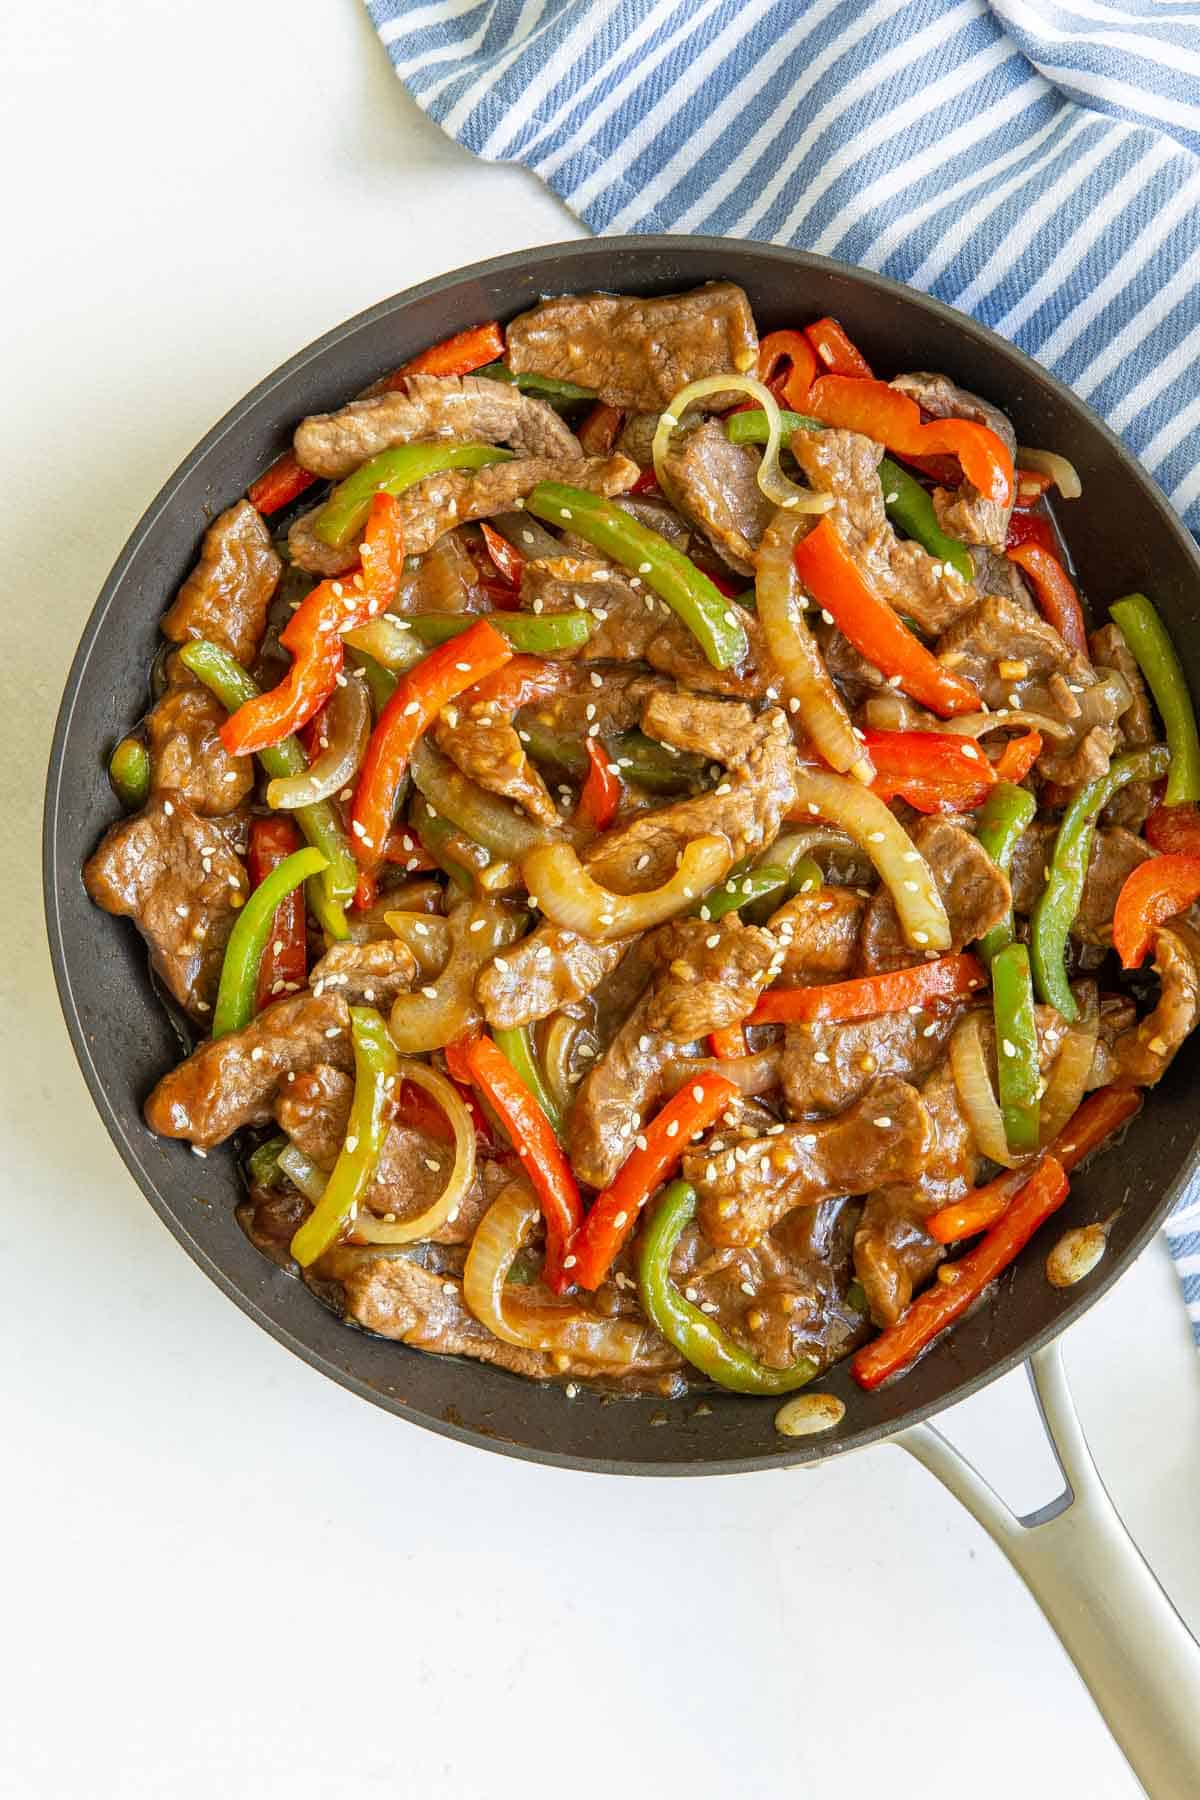 Overhead view of Chinese pepper steak and onions in a skillet by a striped towel.